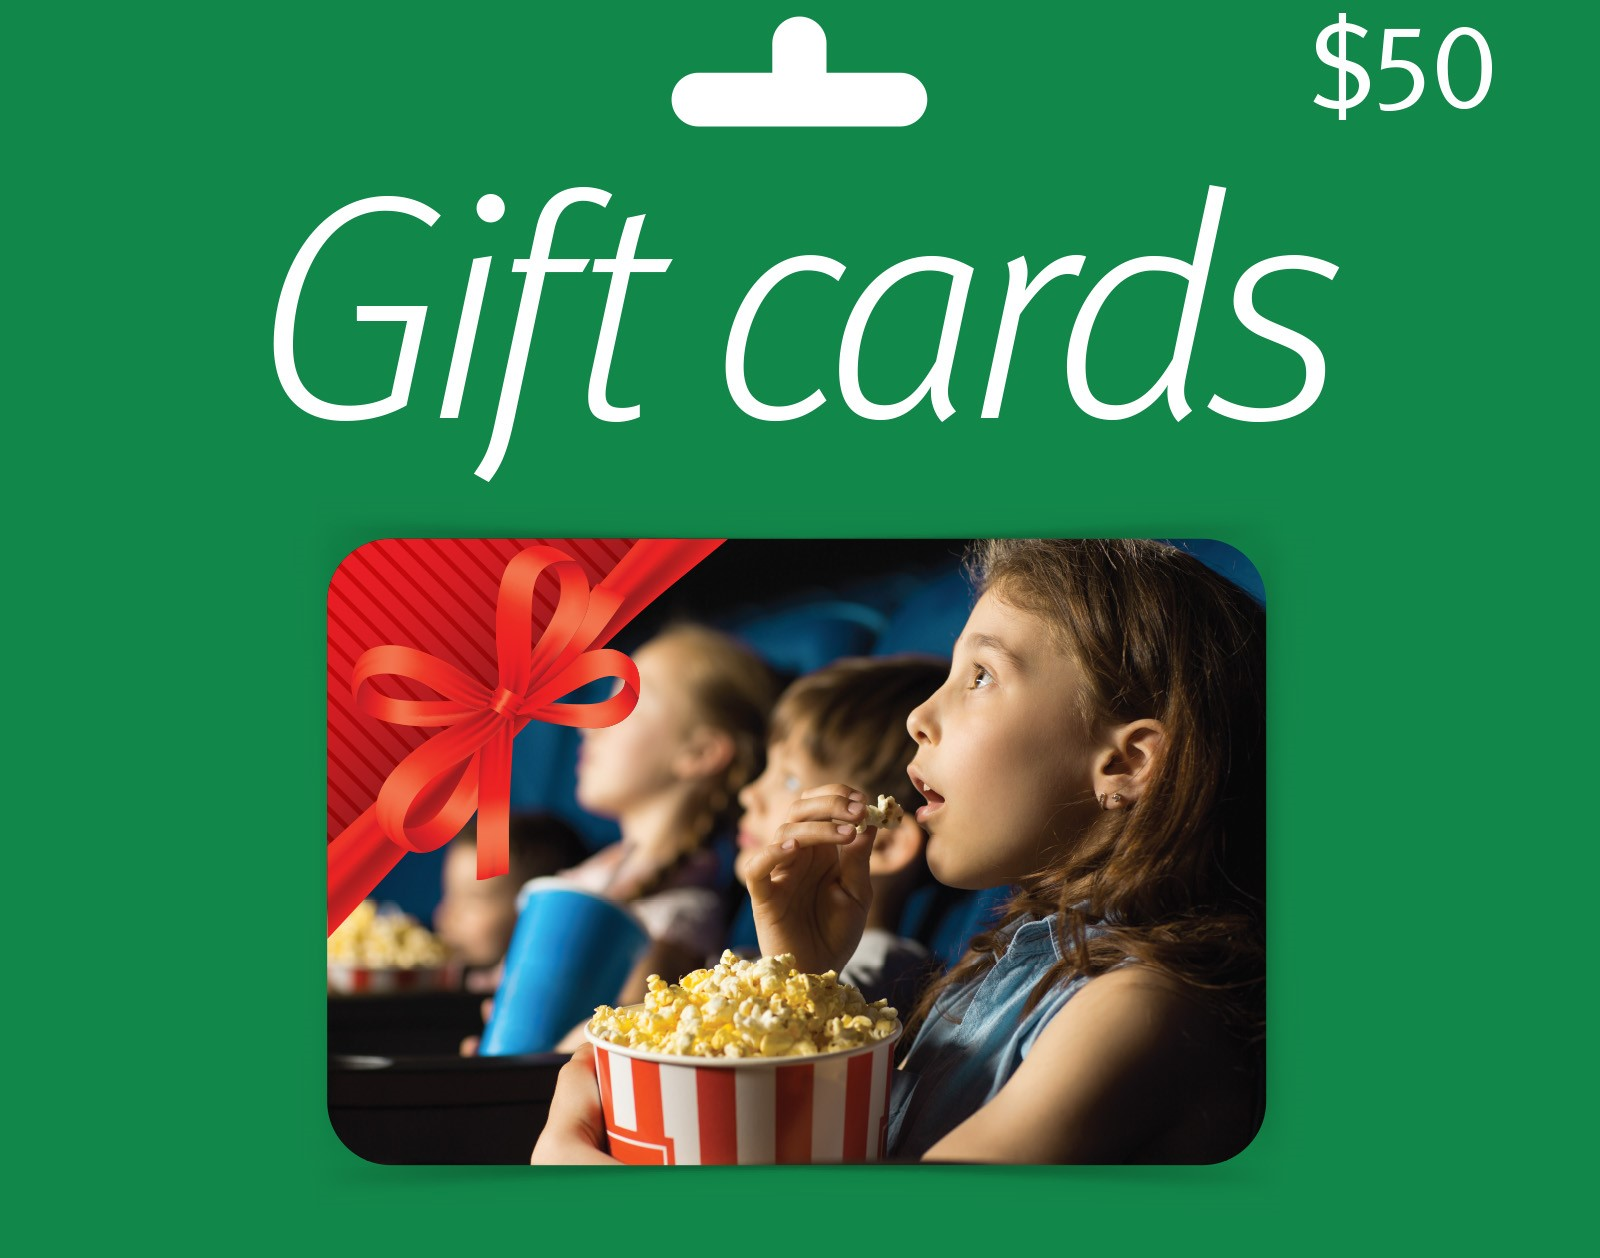 A gift card for fifty dollars. On it a photo of a child eating popcorn at the cinema